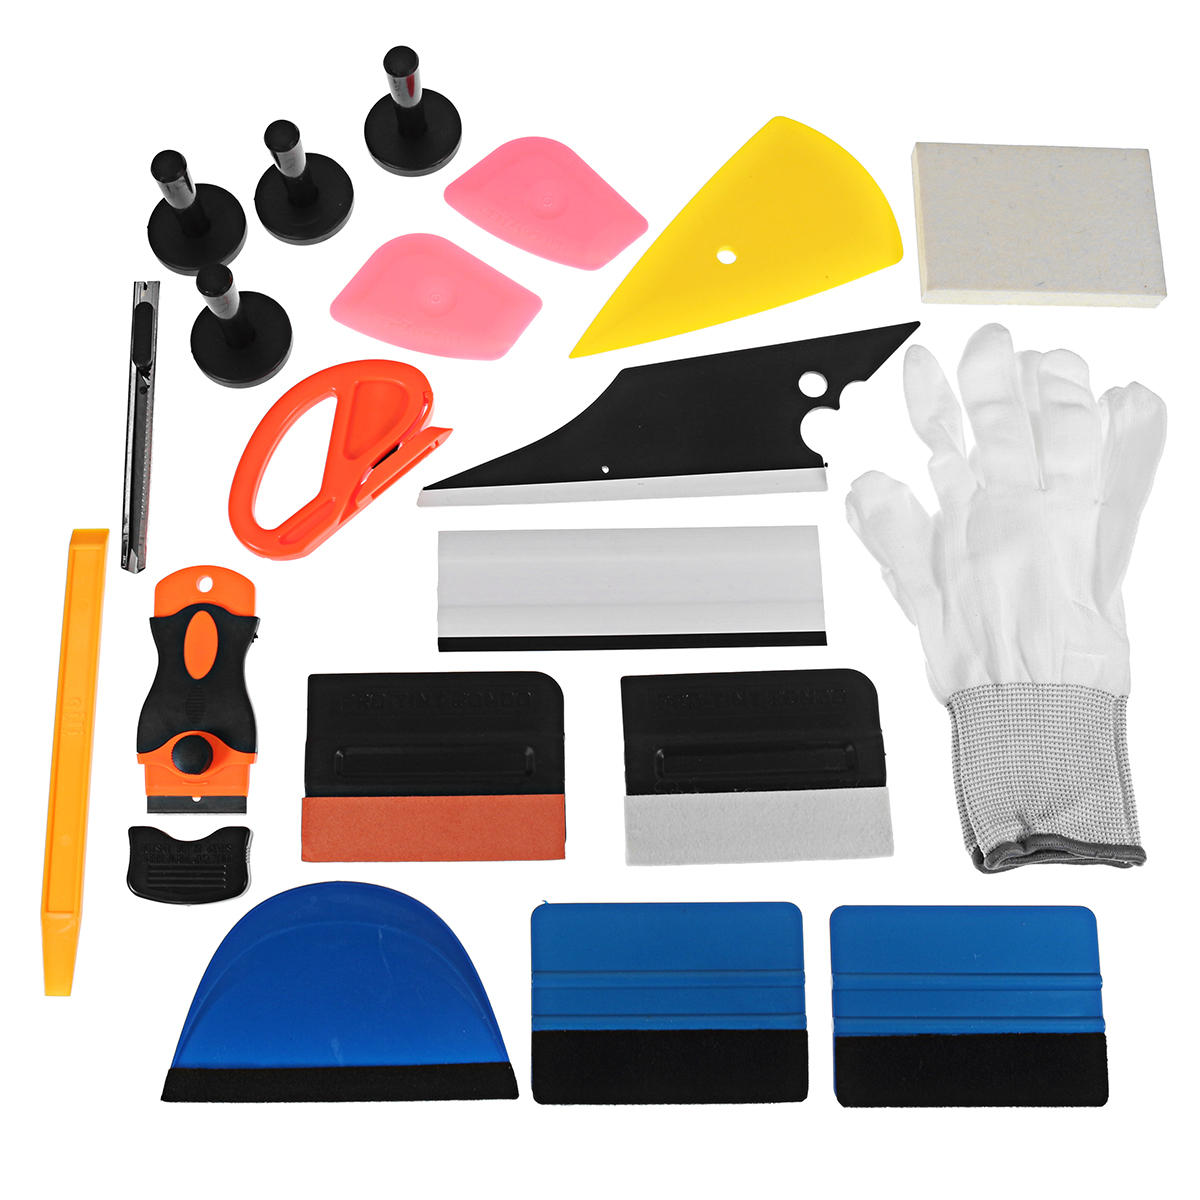 4 Magnets Squeegee Bag Gloves Razor Scraper Car Tint Vinyl Wrapping Tools Kit